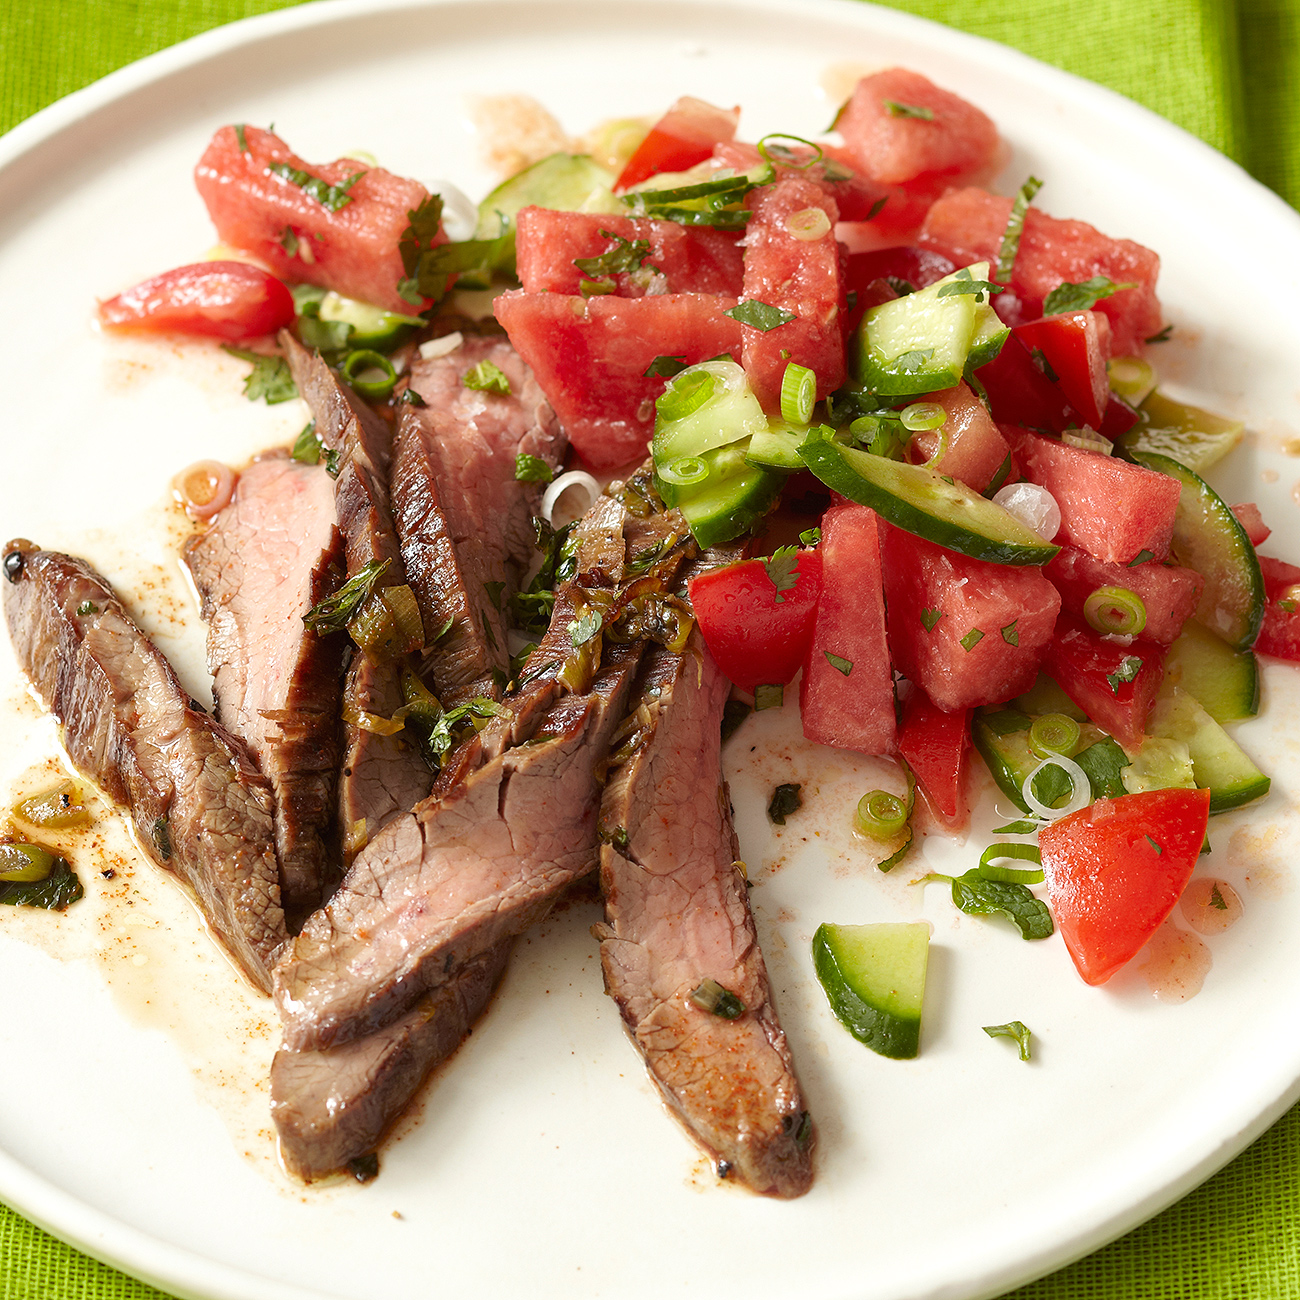 flank steak on plate with salad